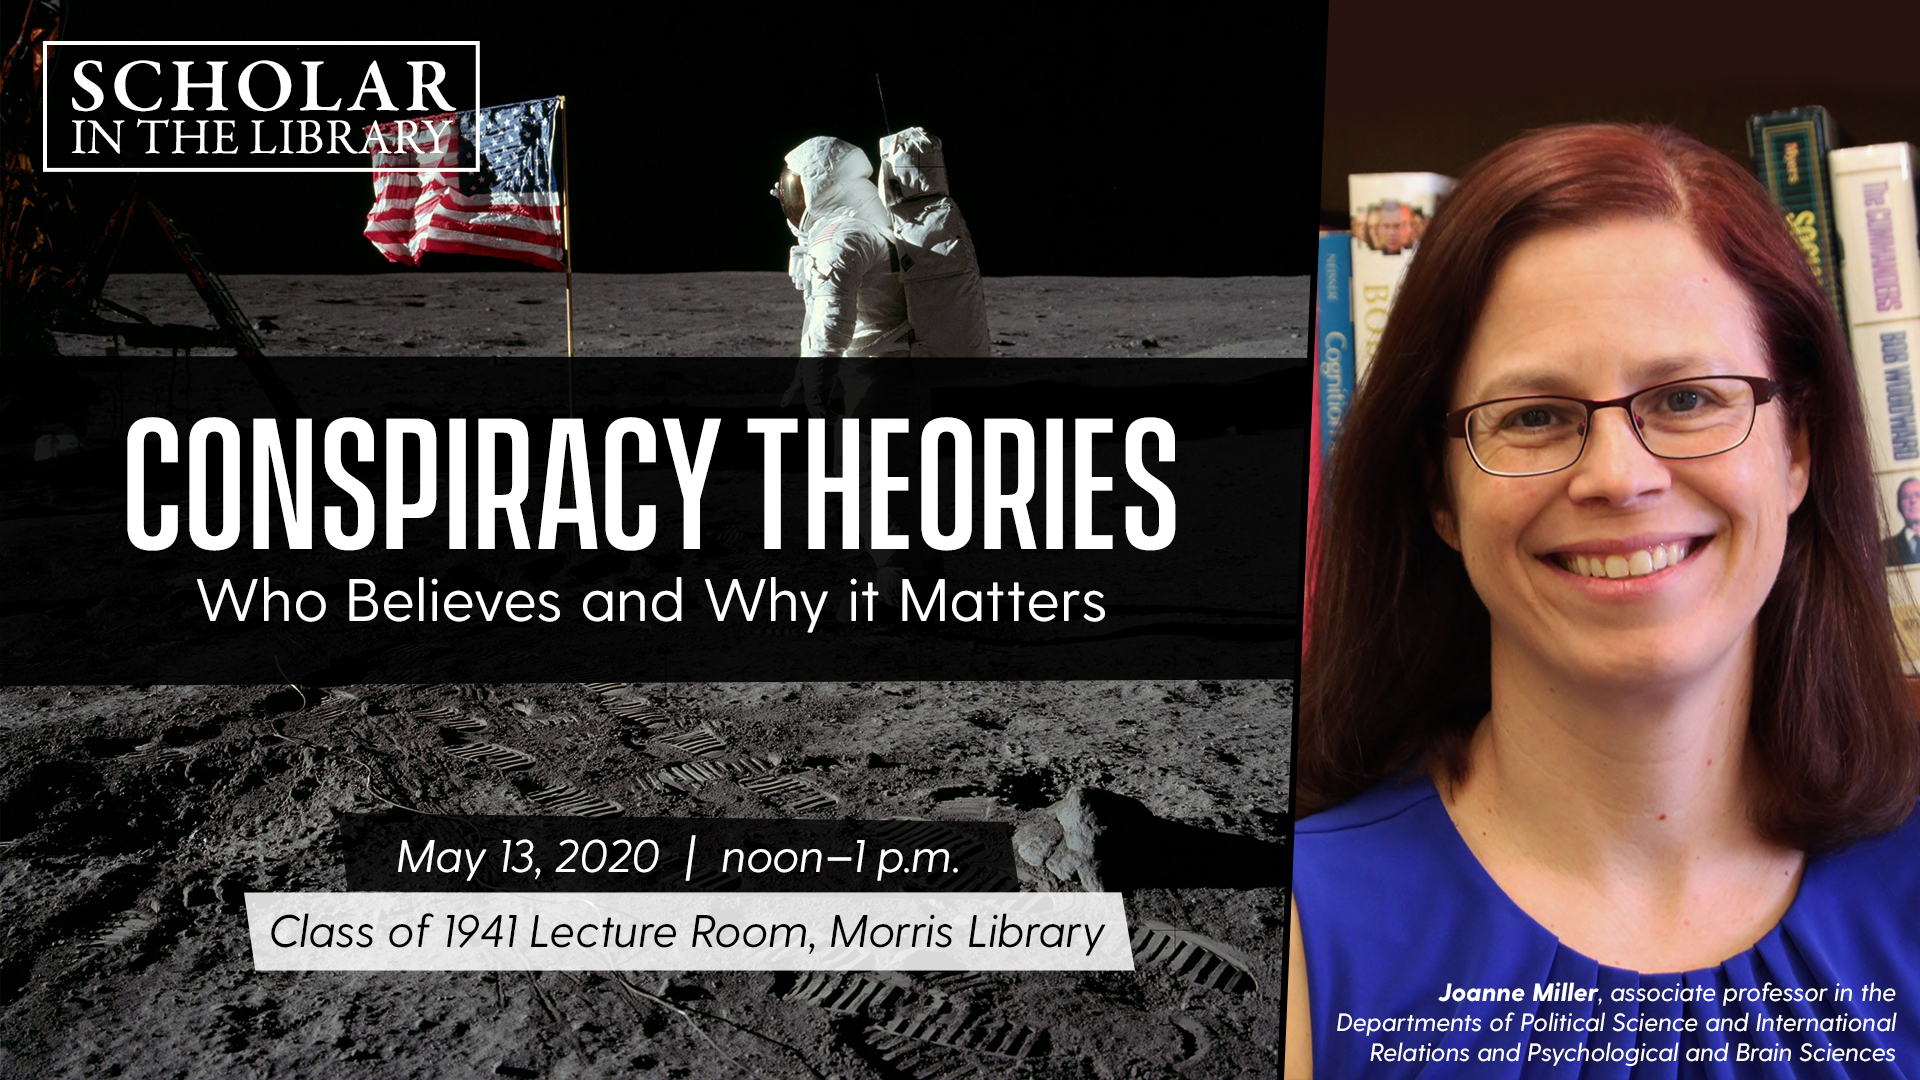 """CANCELLED - Scholar in the Library Series """"Conspiracy Theories: Who Believes and Why it Matters"""""""